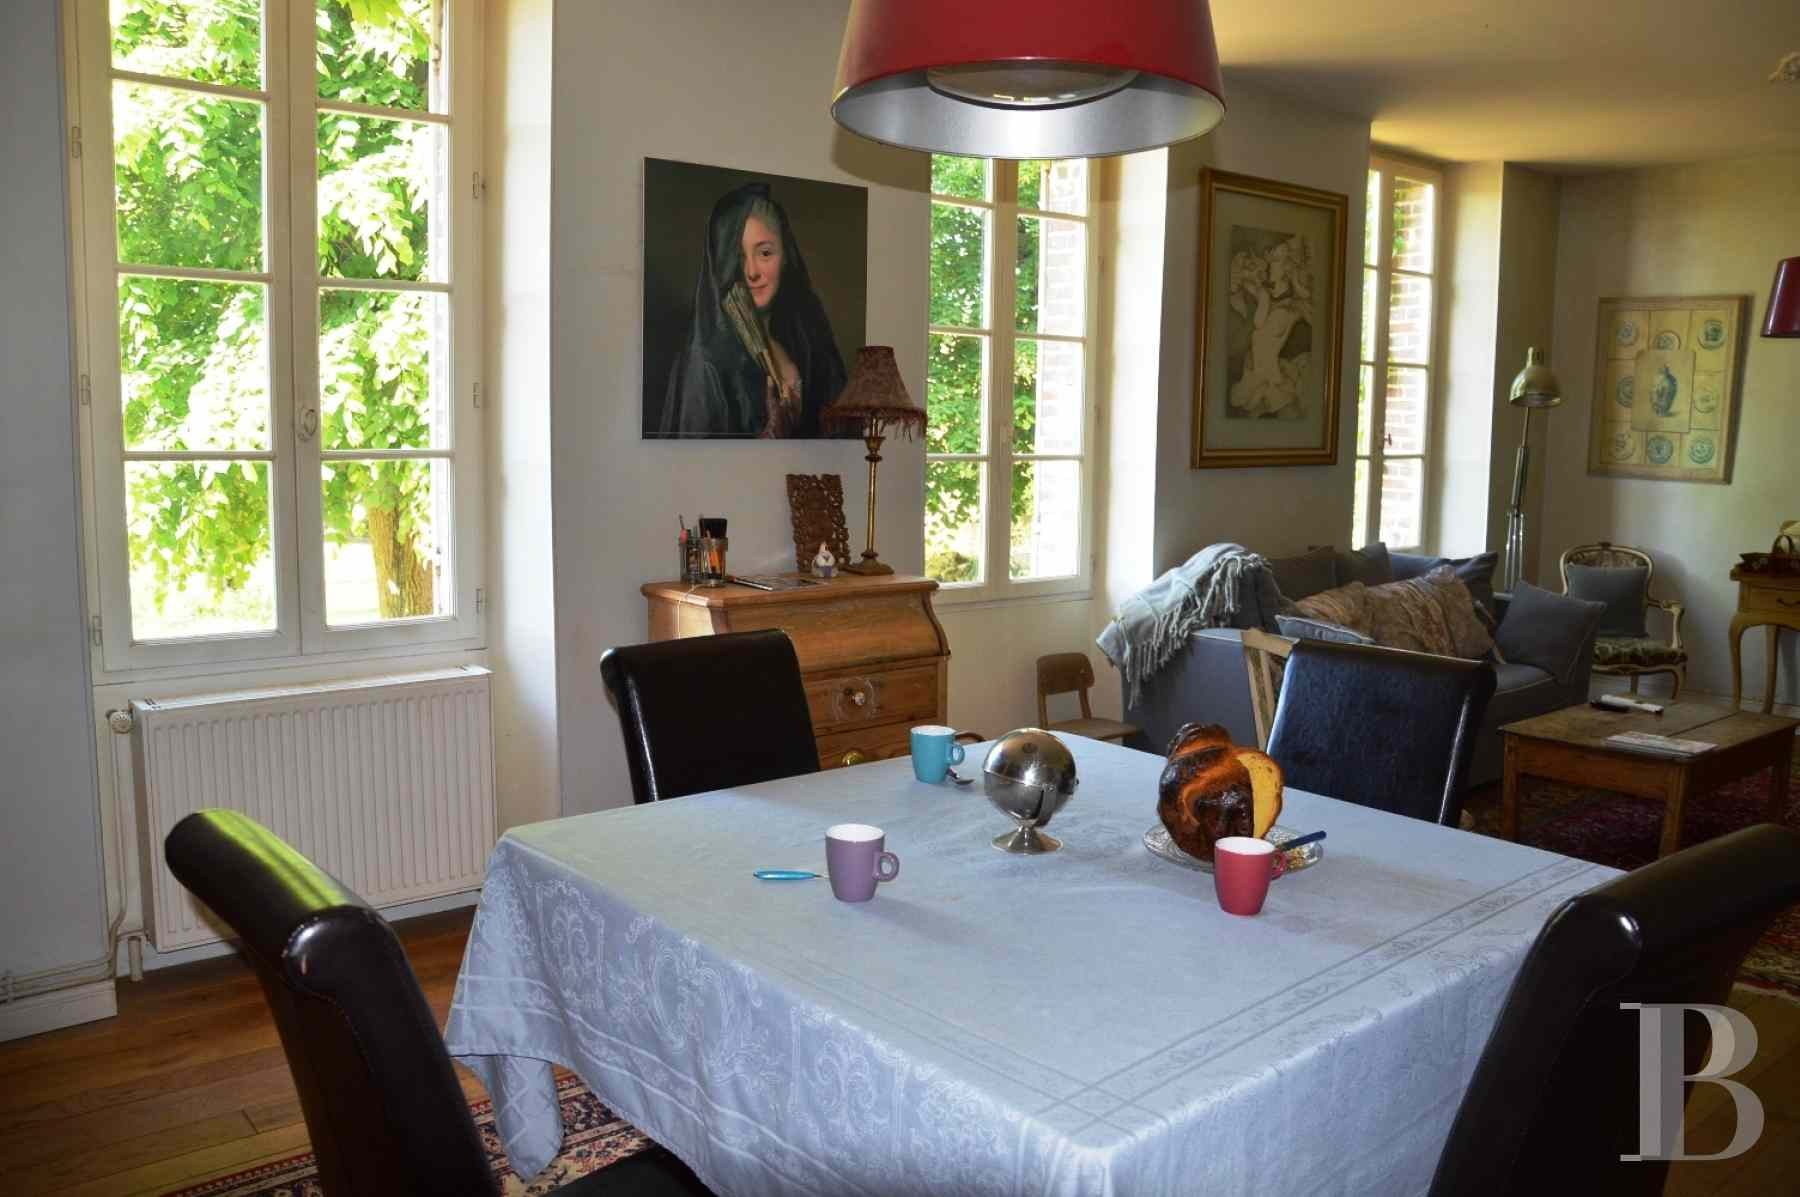 character properties France center val de loire residence vestiges - 4 zoom